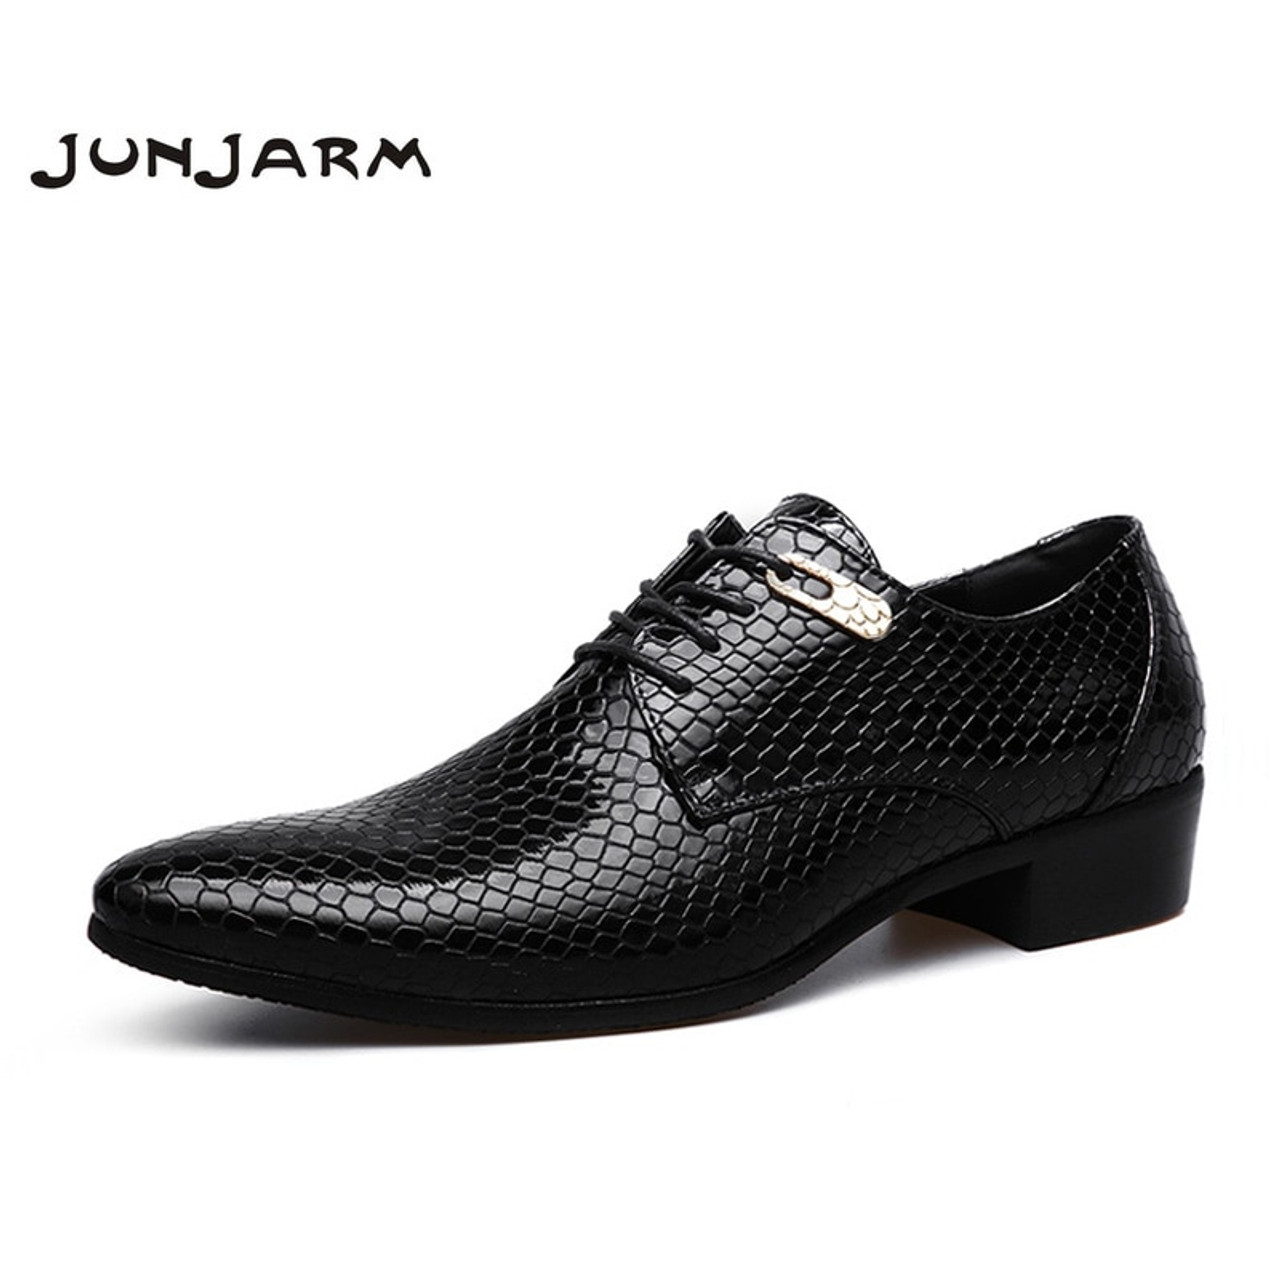 Summer Mesh Spring Leather Dress Shoes Breathable Men Formal Business Oxfords Plus Size 38-48 For Sale Men Dress Shoes Men's Shoes Shoes